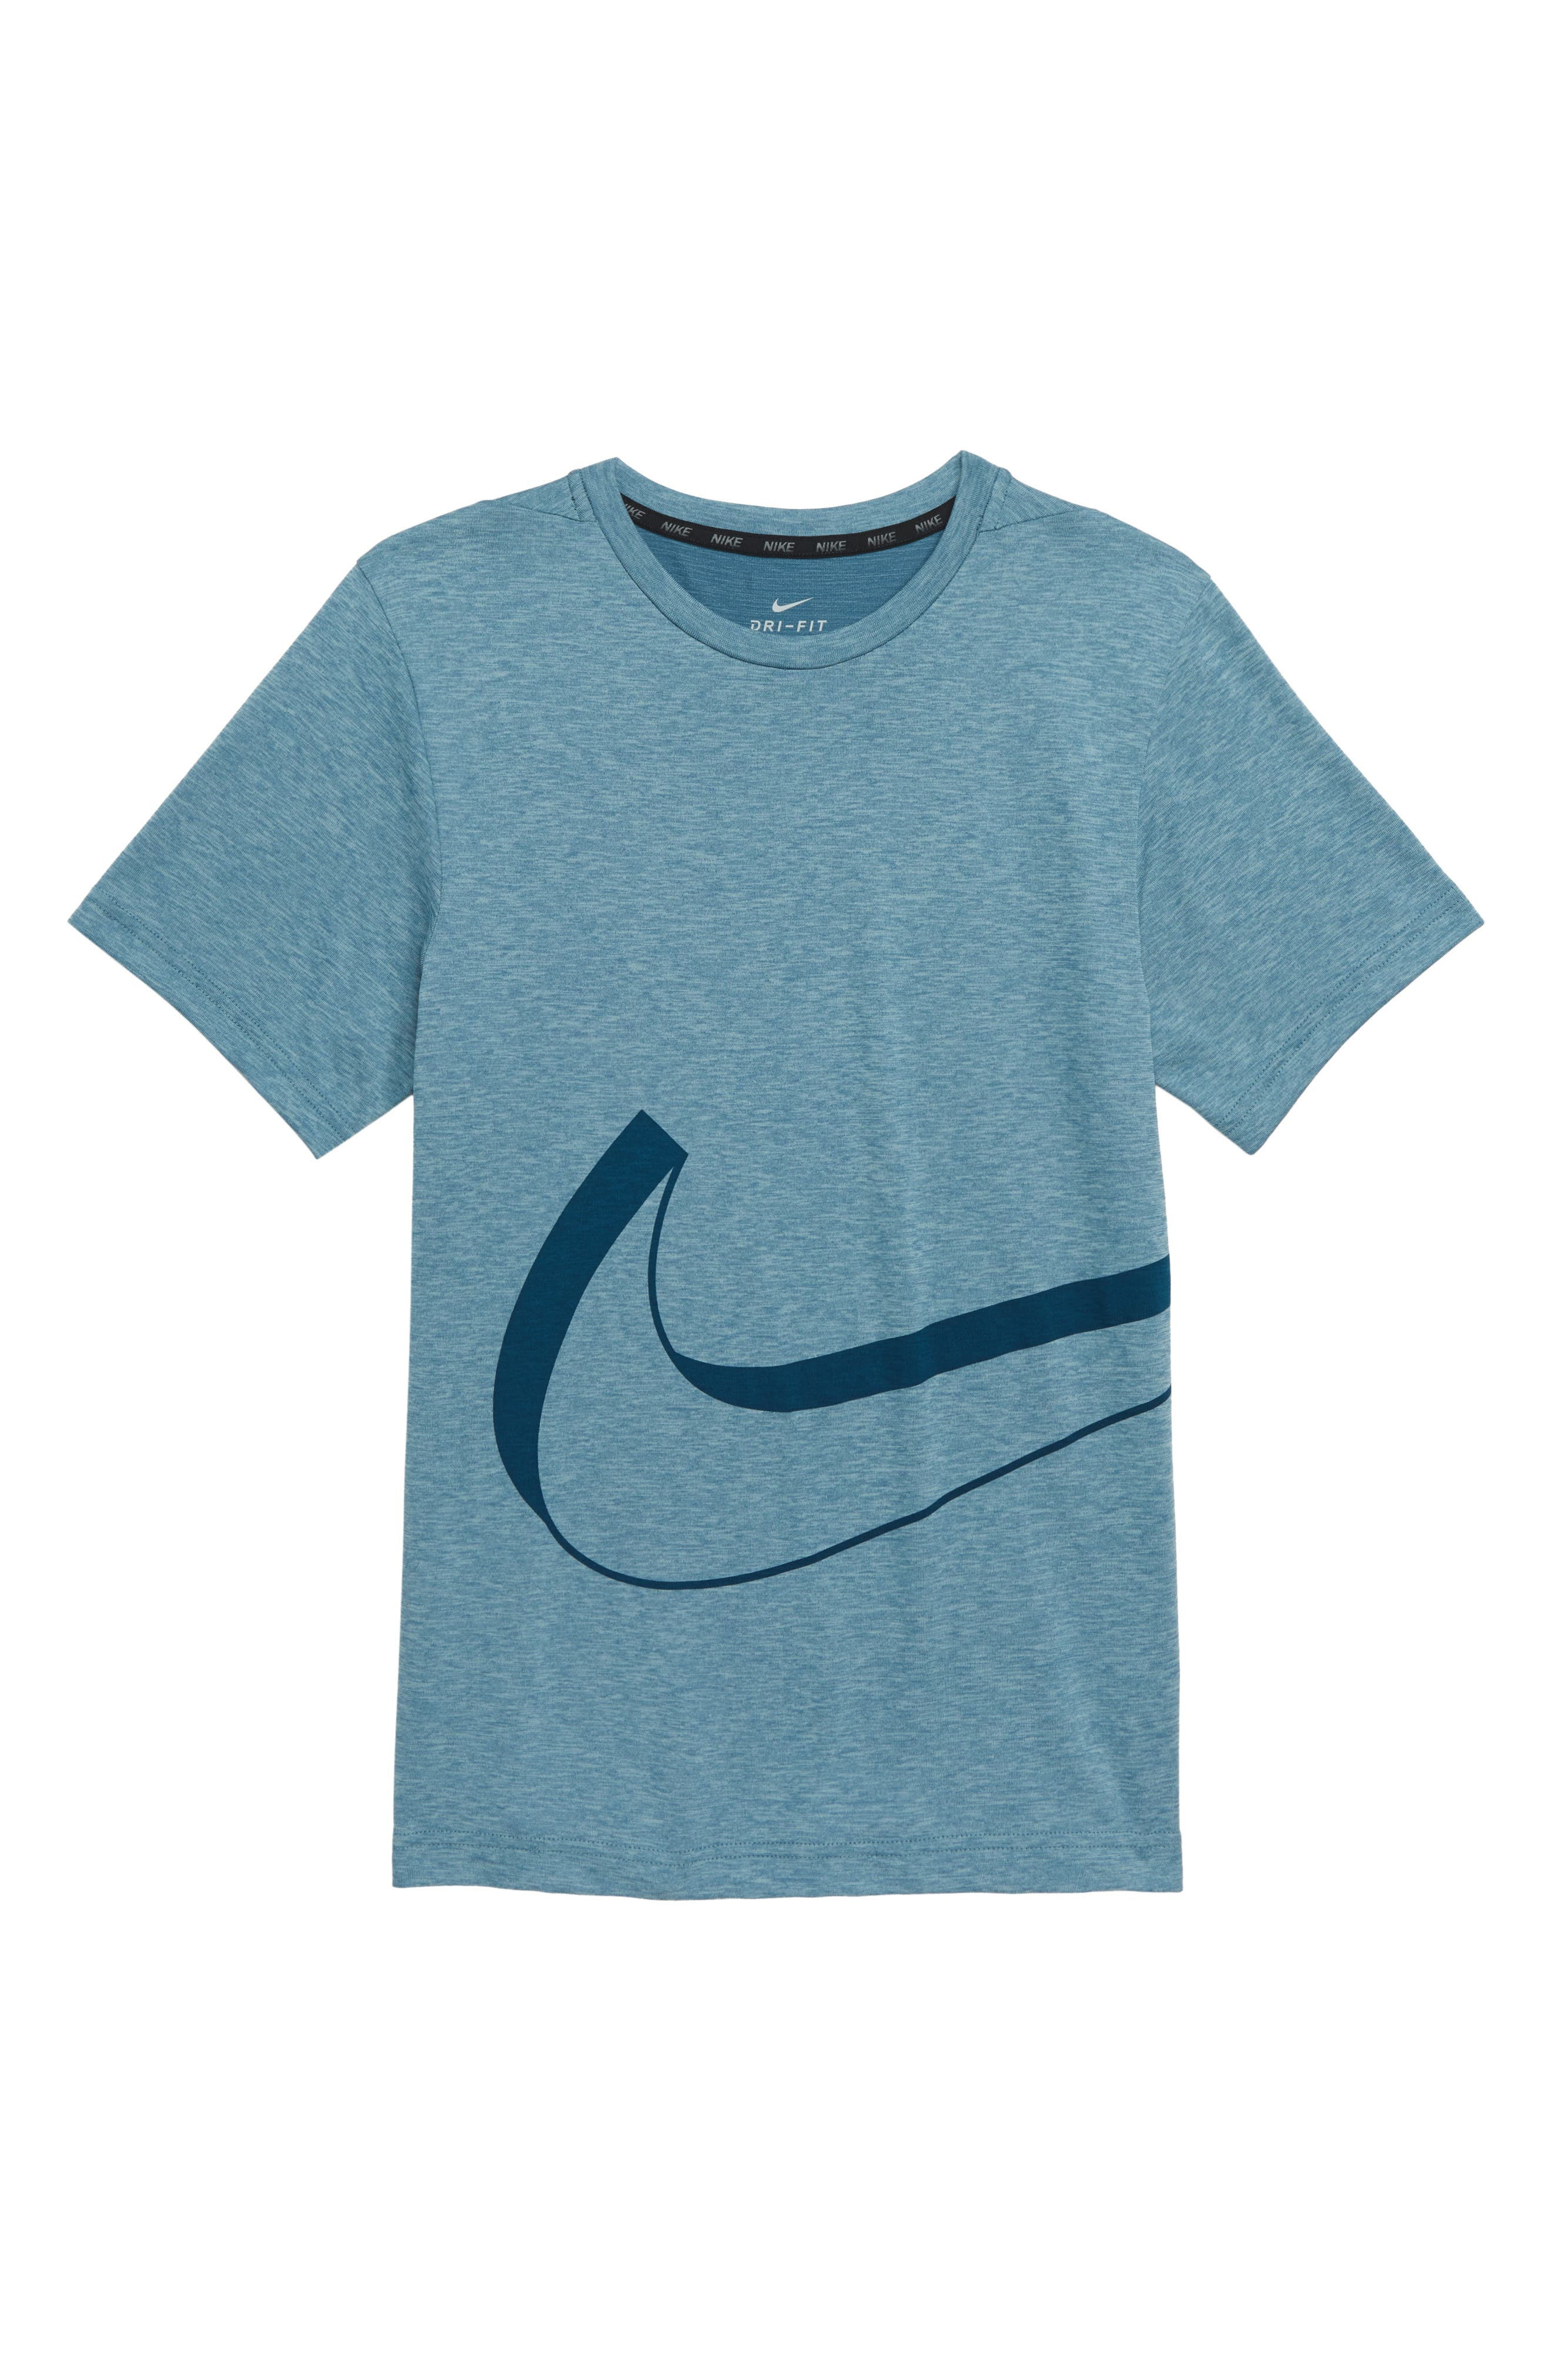 Dry Graphic T-Shirt,                         Main,                         color, CELESTIAL TEAL/ OCEAN BLISS